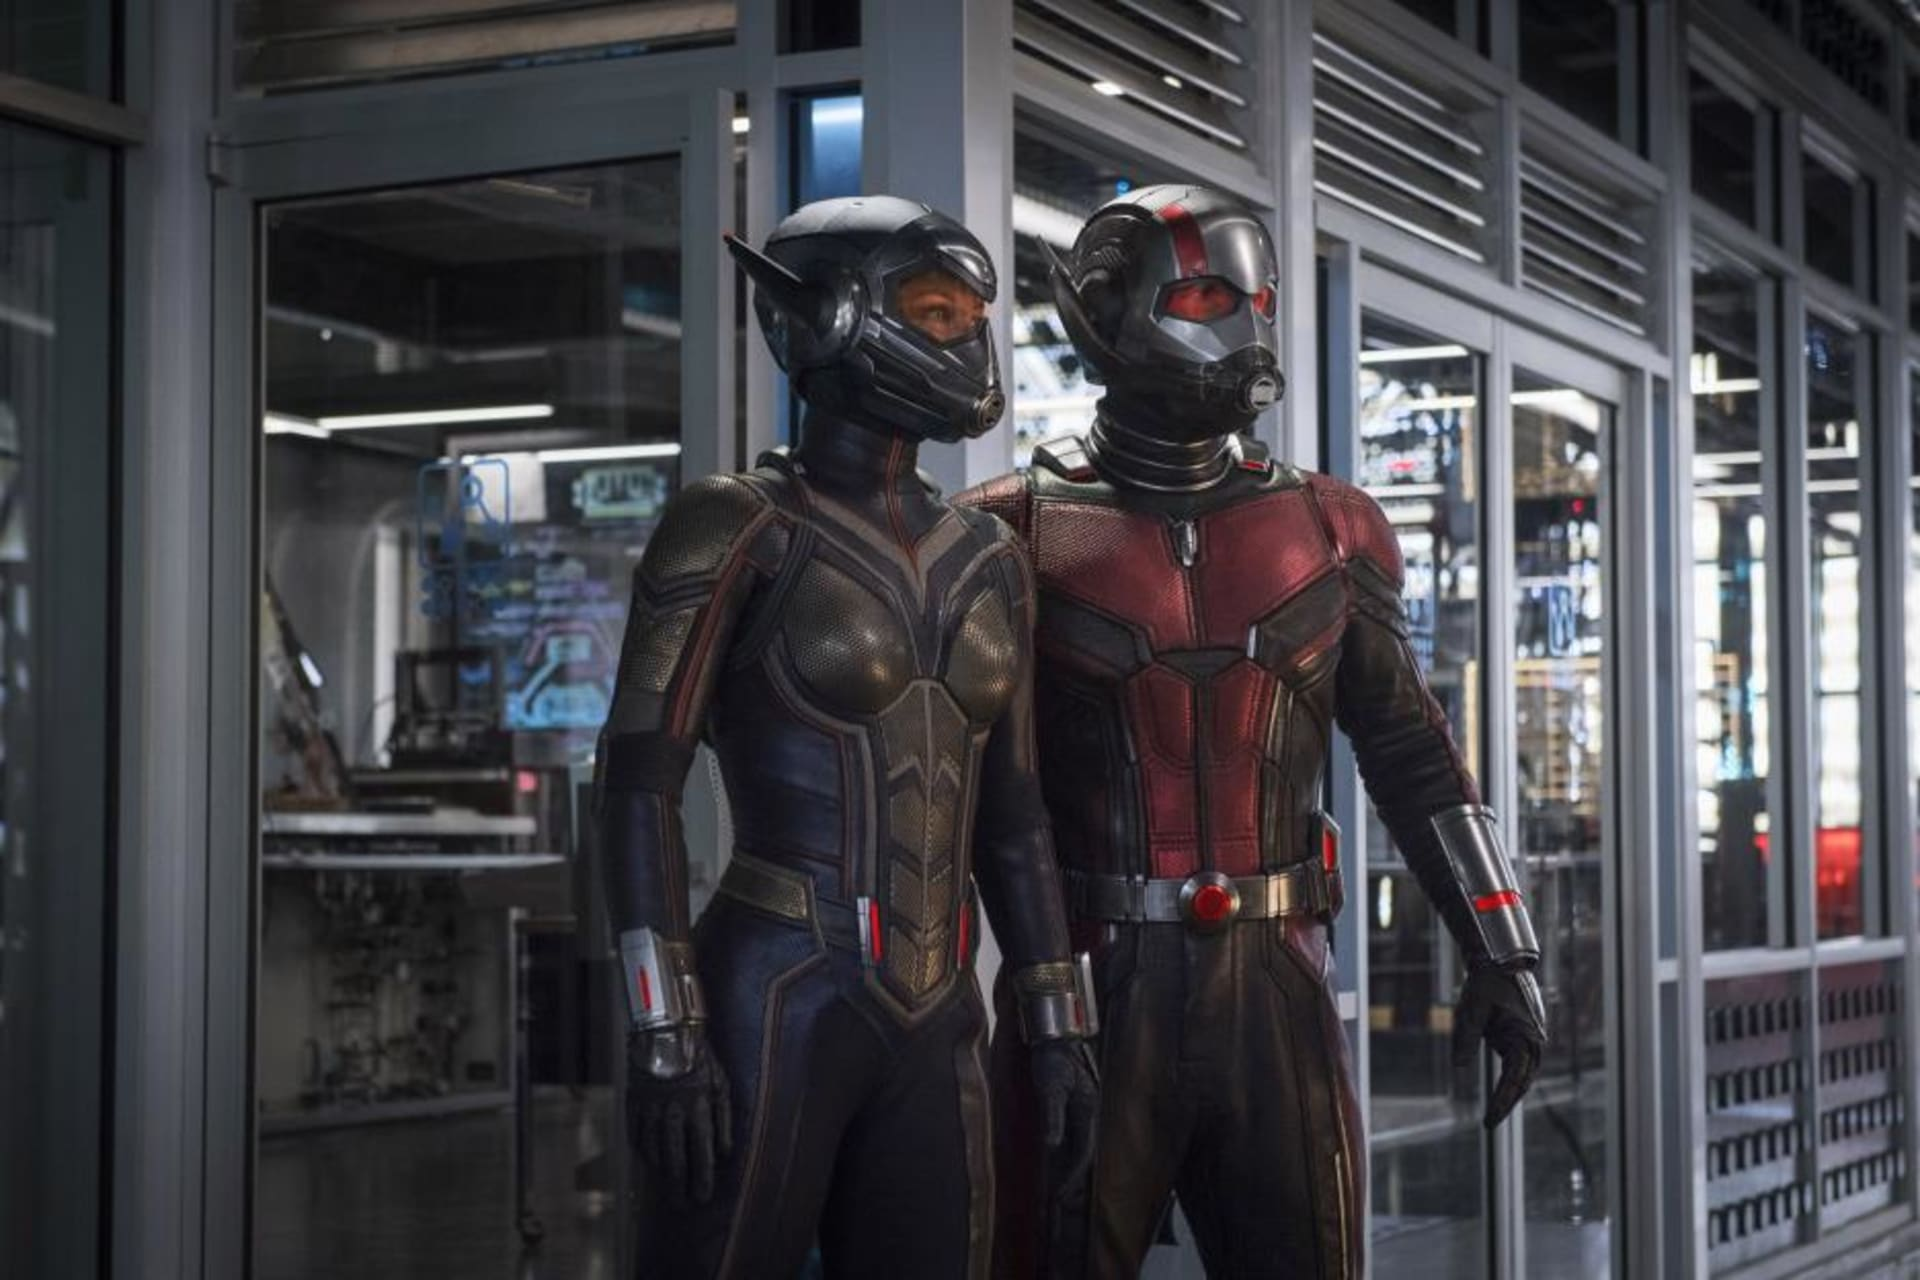 Marvel Movies: All MCU Movies Ranked From Best to Worst